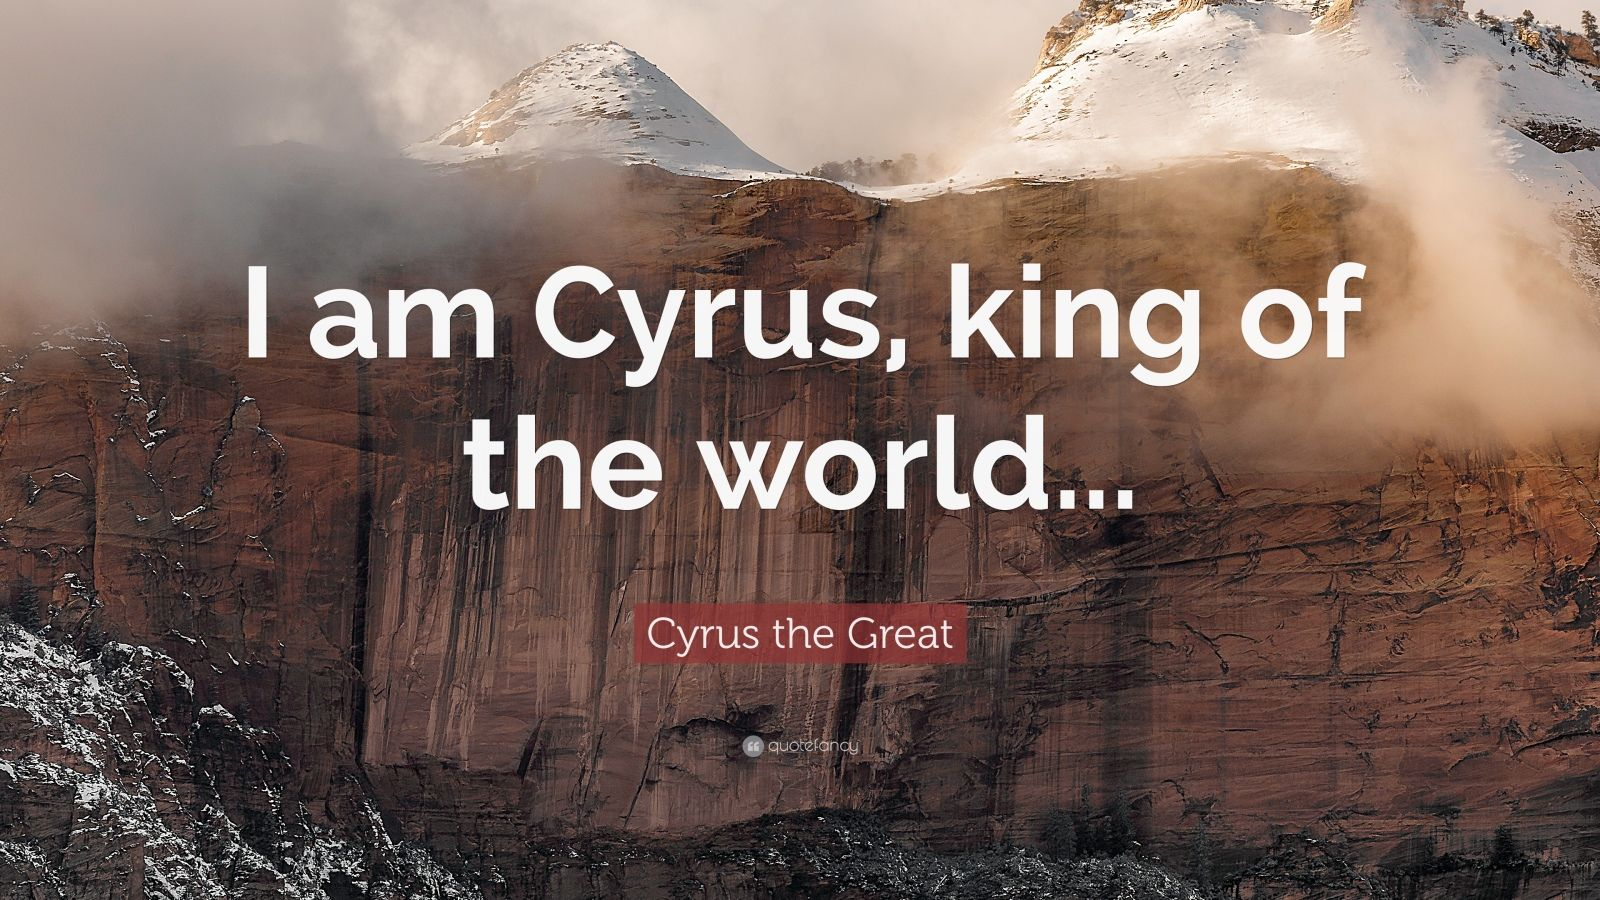 cyrus the great leadership A new generation of readers, including business executives and managers, military officers, and government officials, can now learn about and benefit from cyrus the great's extraordinary achievements, which exceeded all other leaders' throughout antiquity.